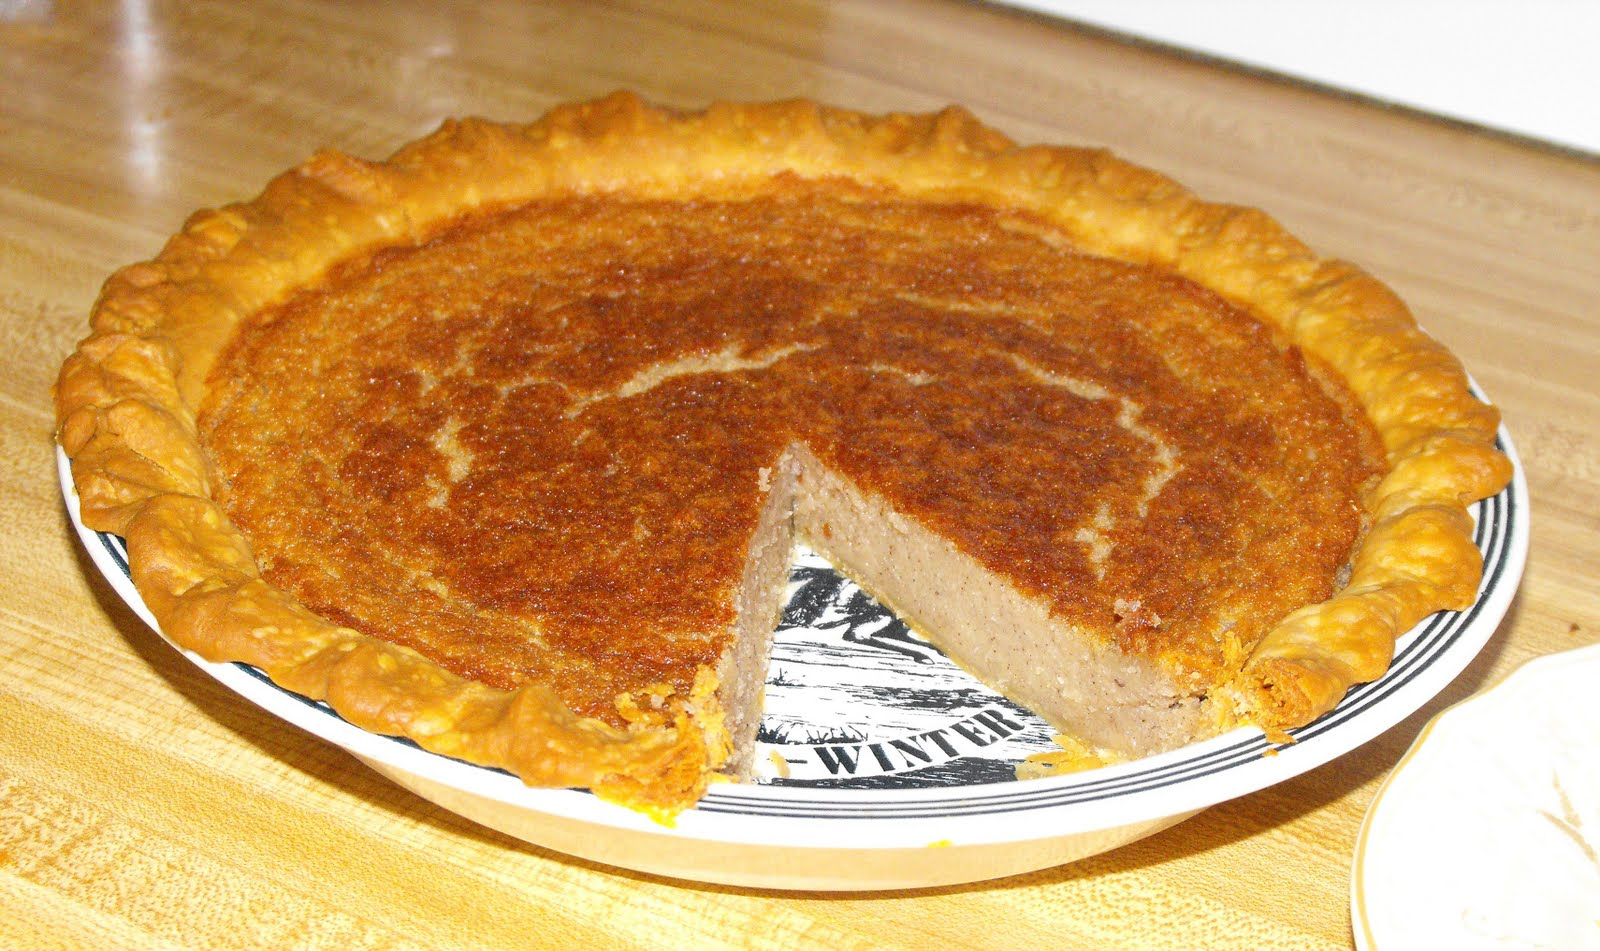 And last but not least, the real dessert--a pie made from navy beans .